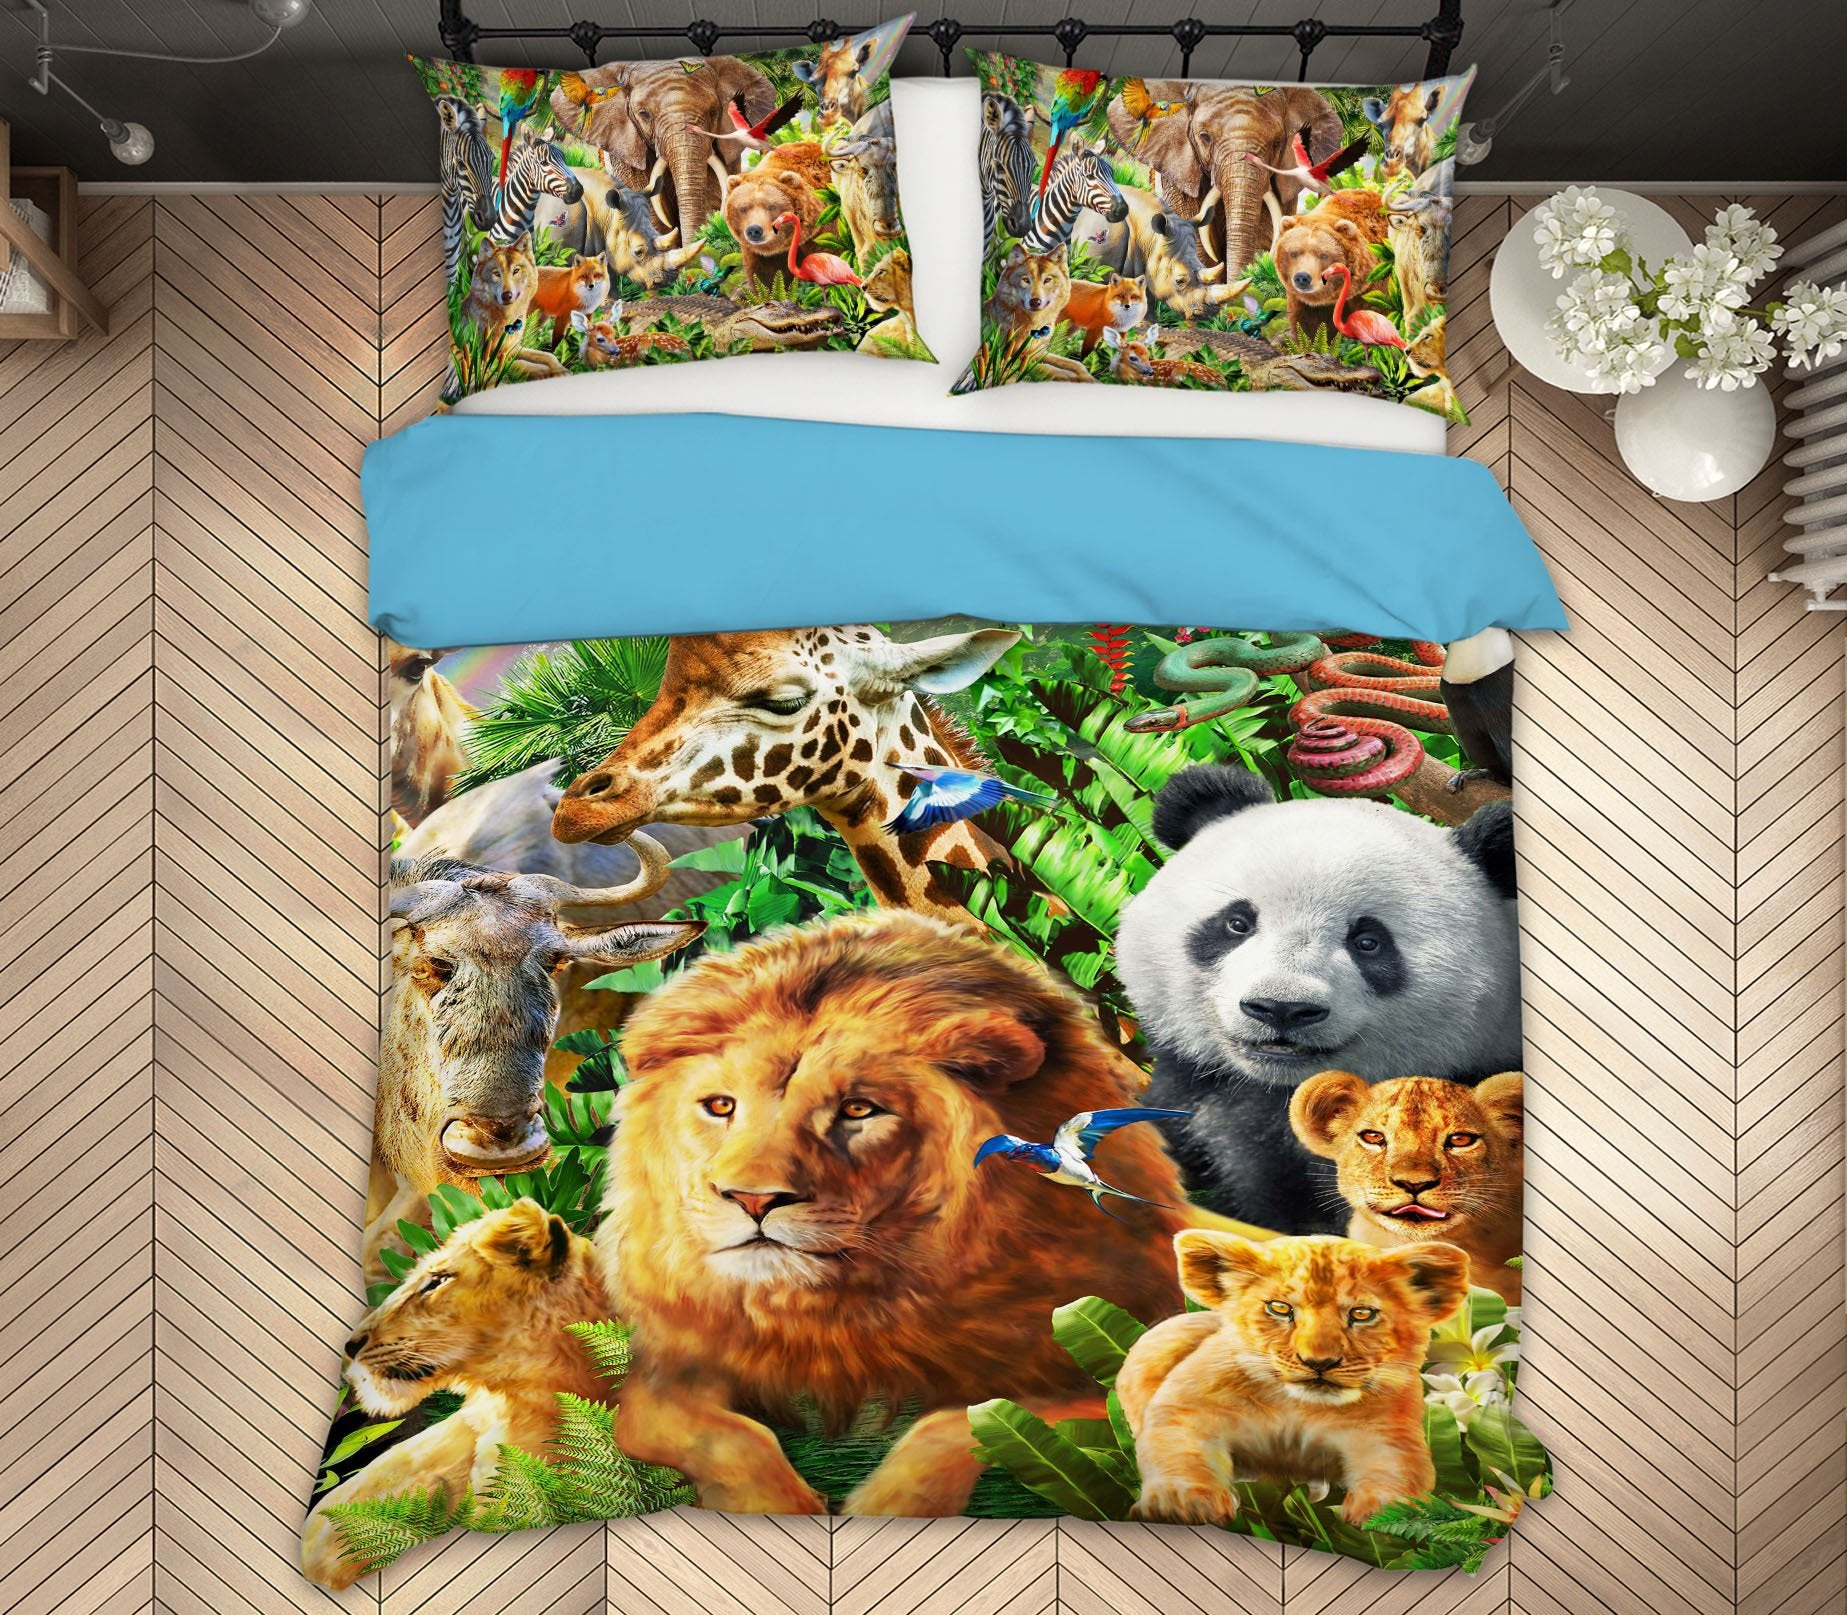 3D Animal World 2131 Adrian Chesterman Bedding Bed Pillowcases Quilt Quiet Covers AJ Creativity Home